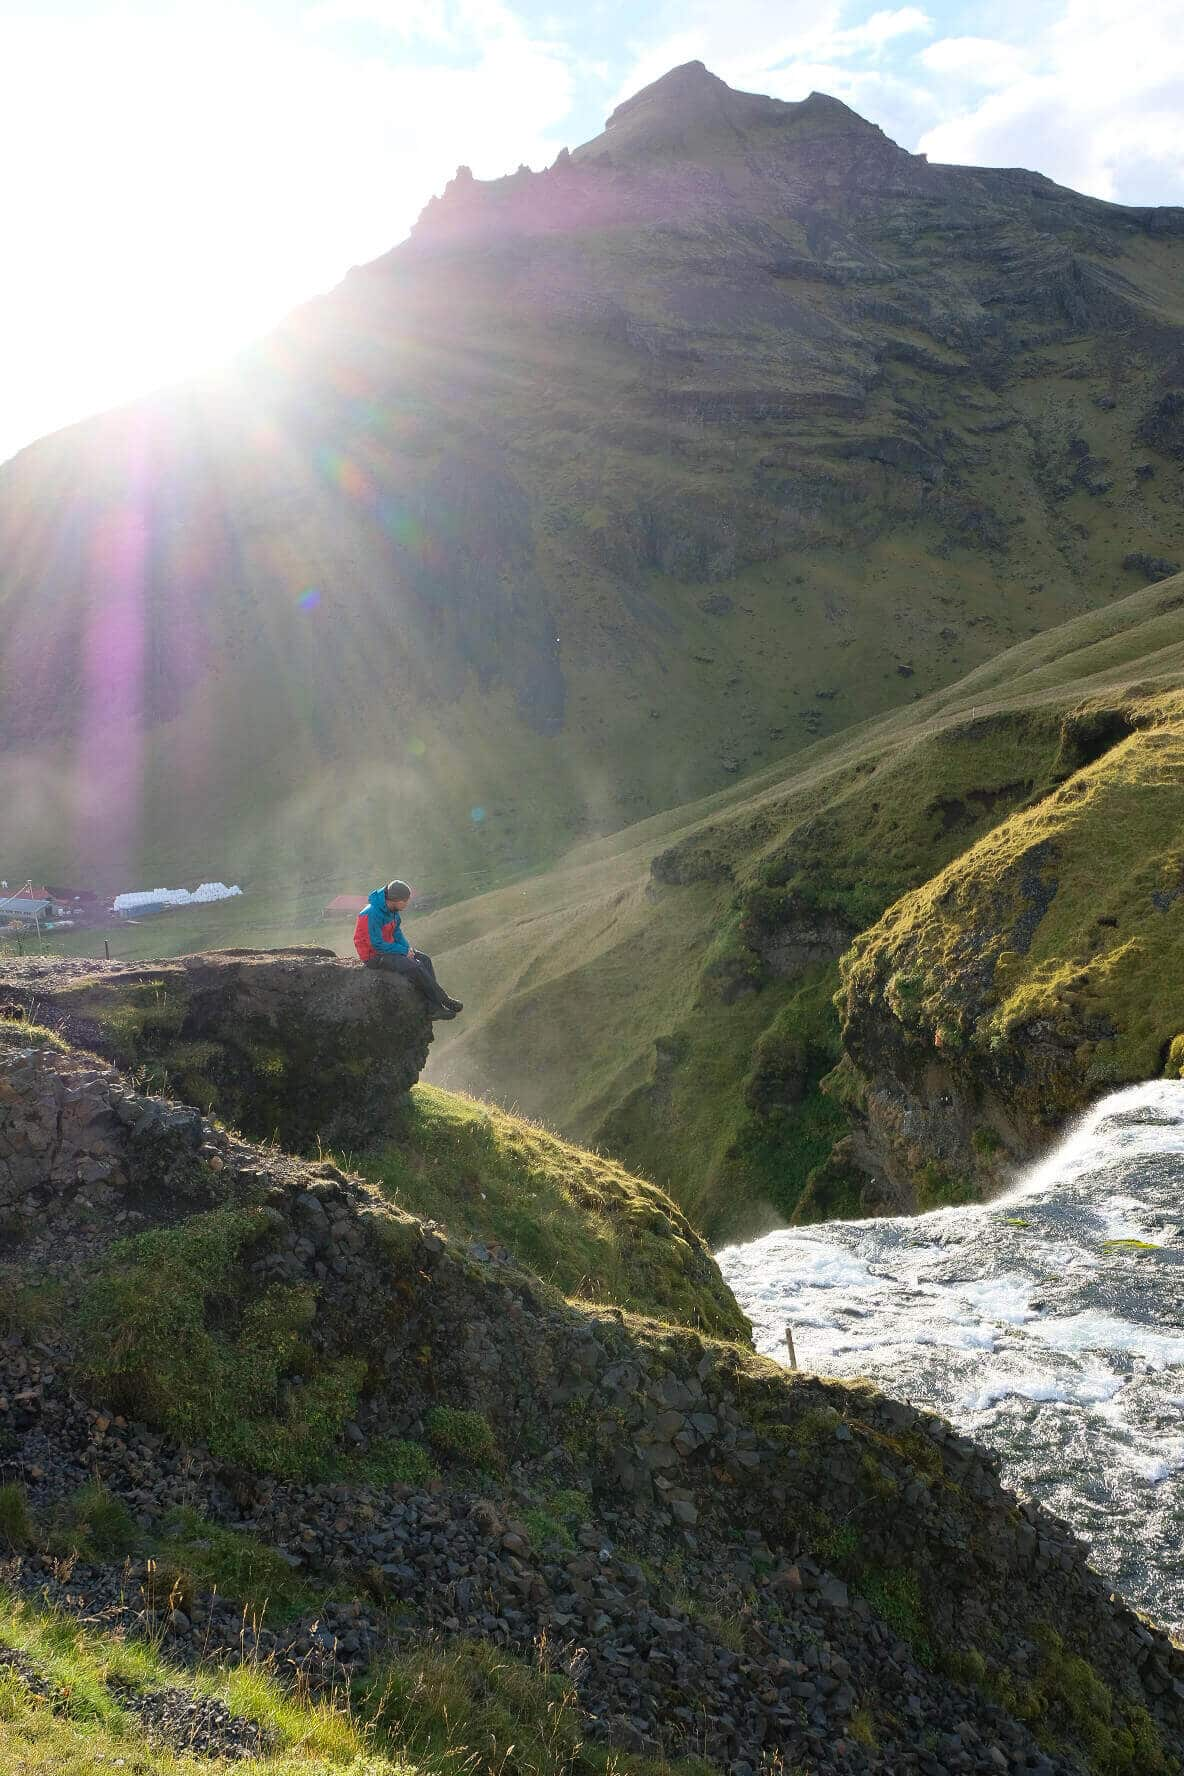 Hiking to the top of Skogafoss, Iceland road trip itinerary